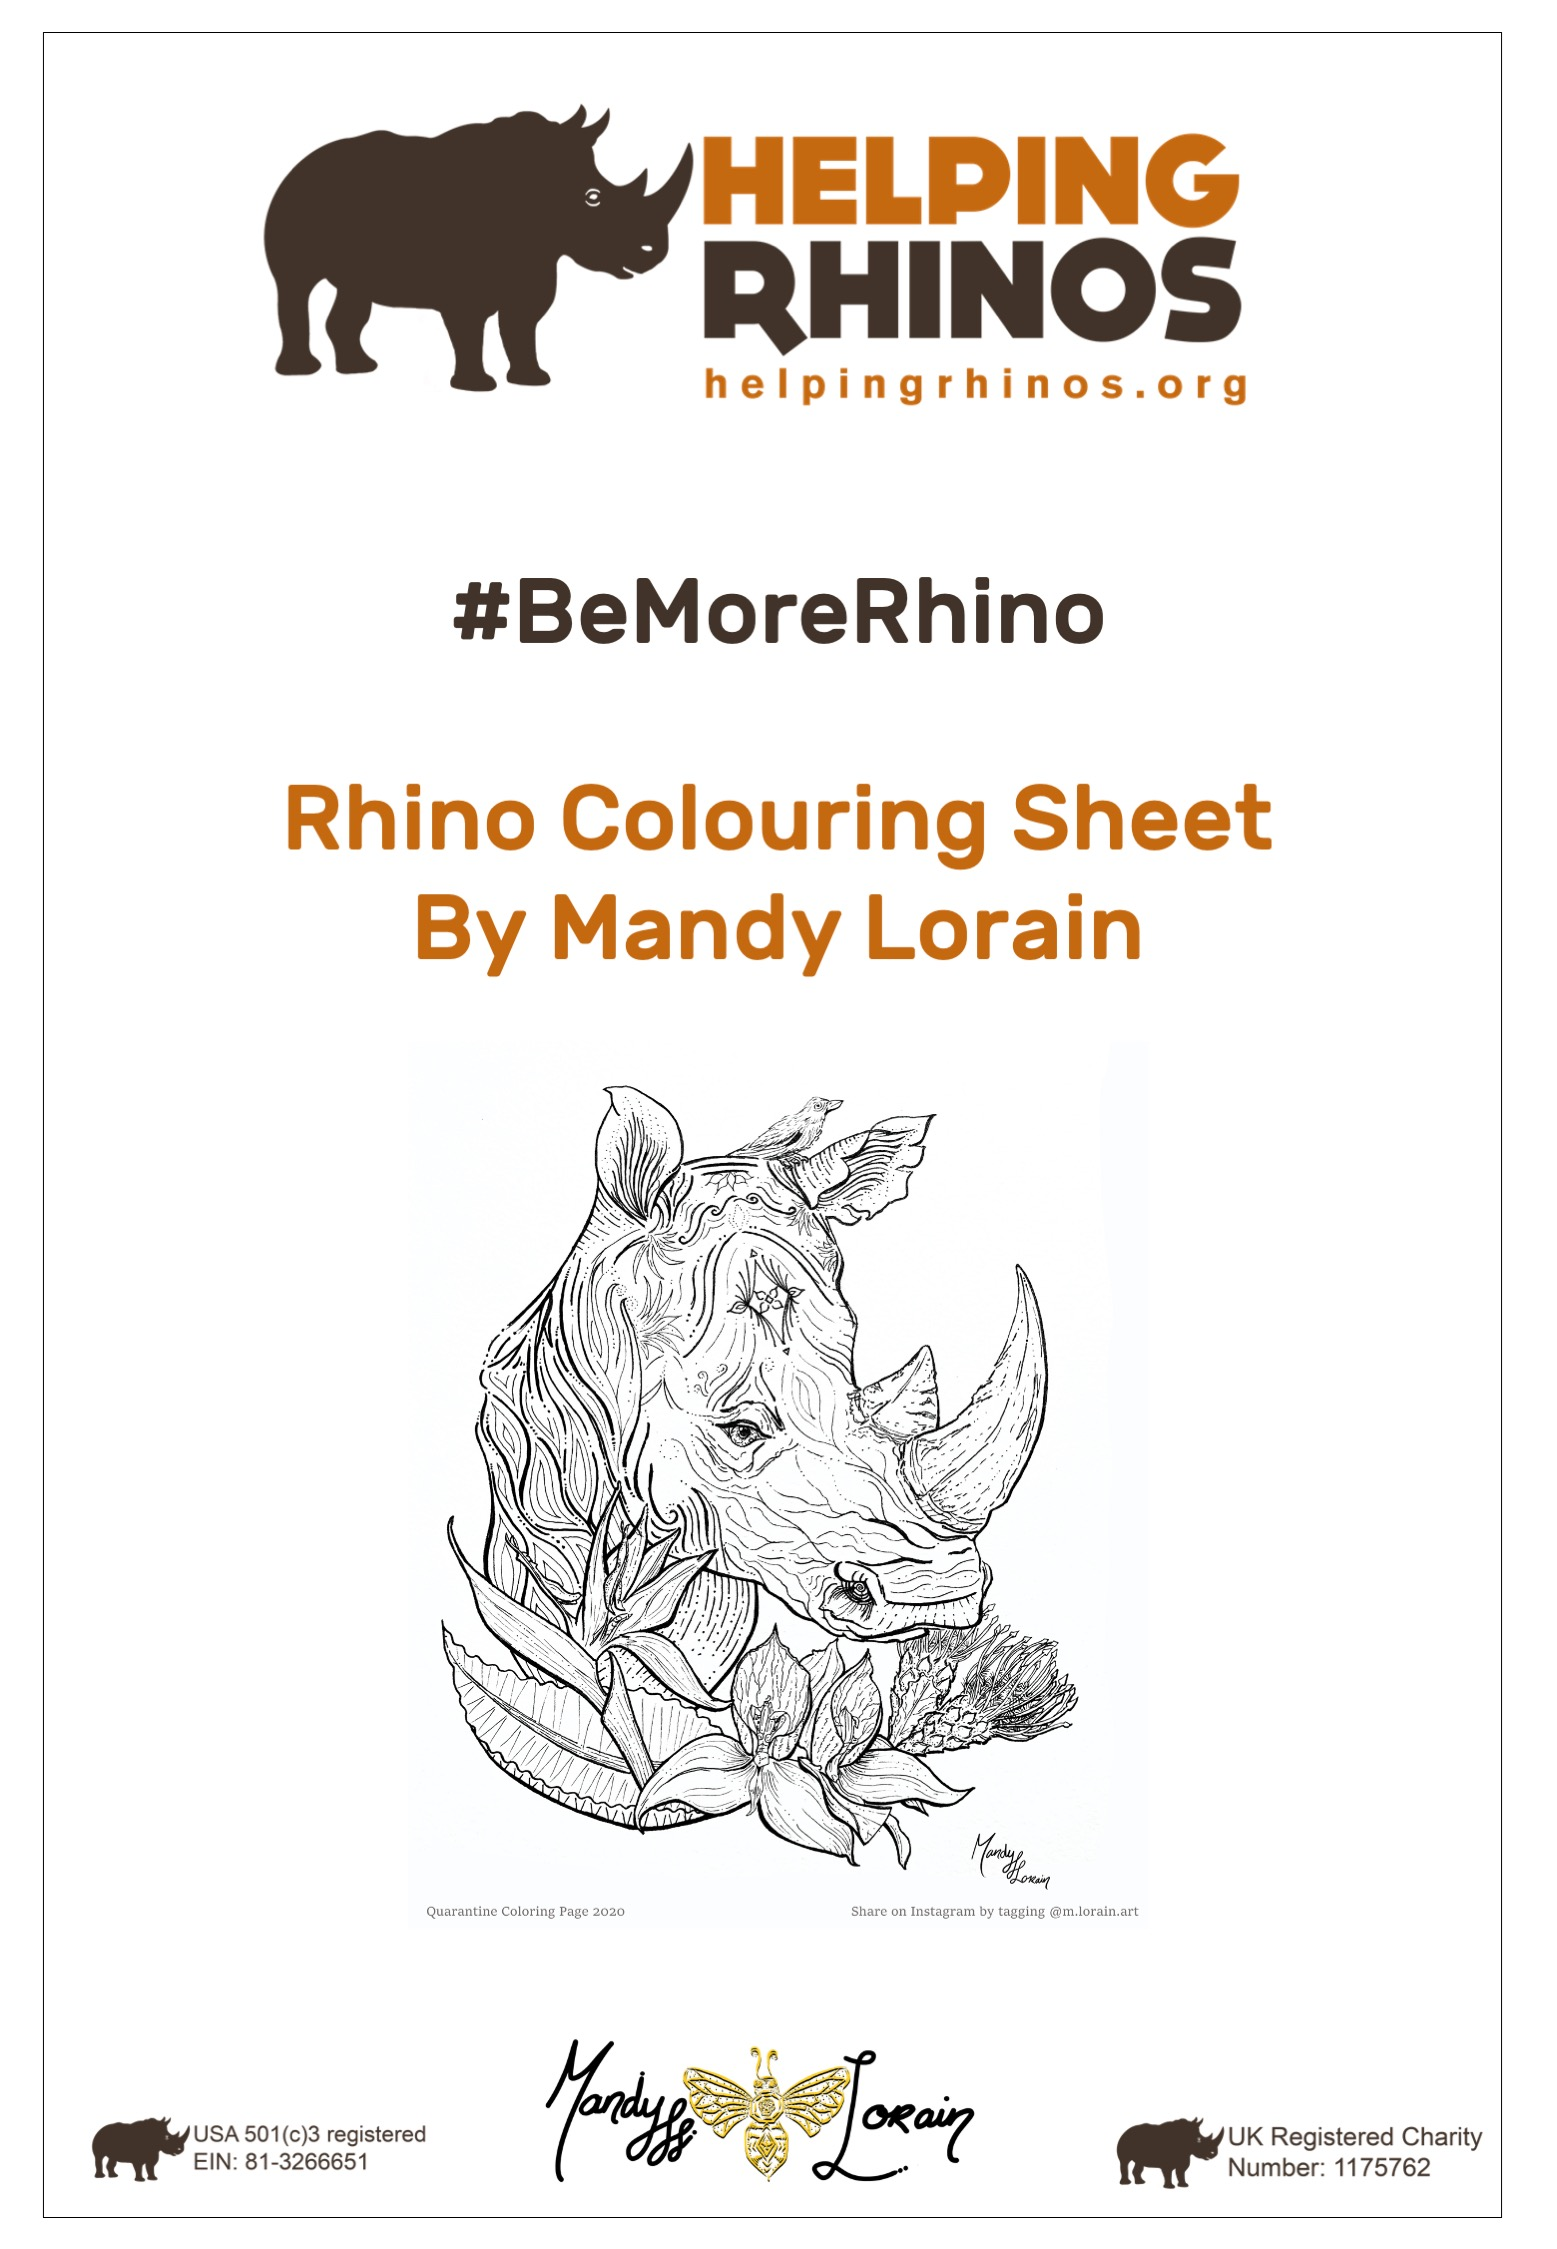 Rhino-Colouring-Sheet